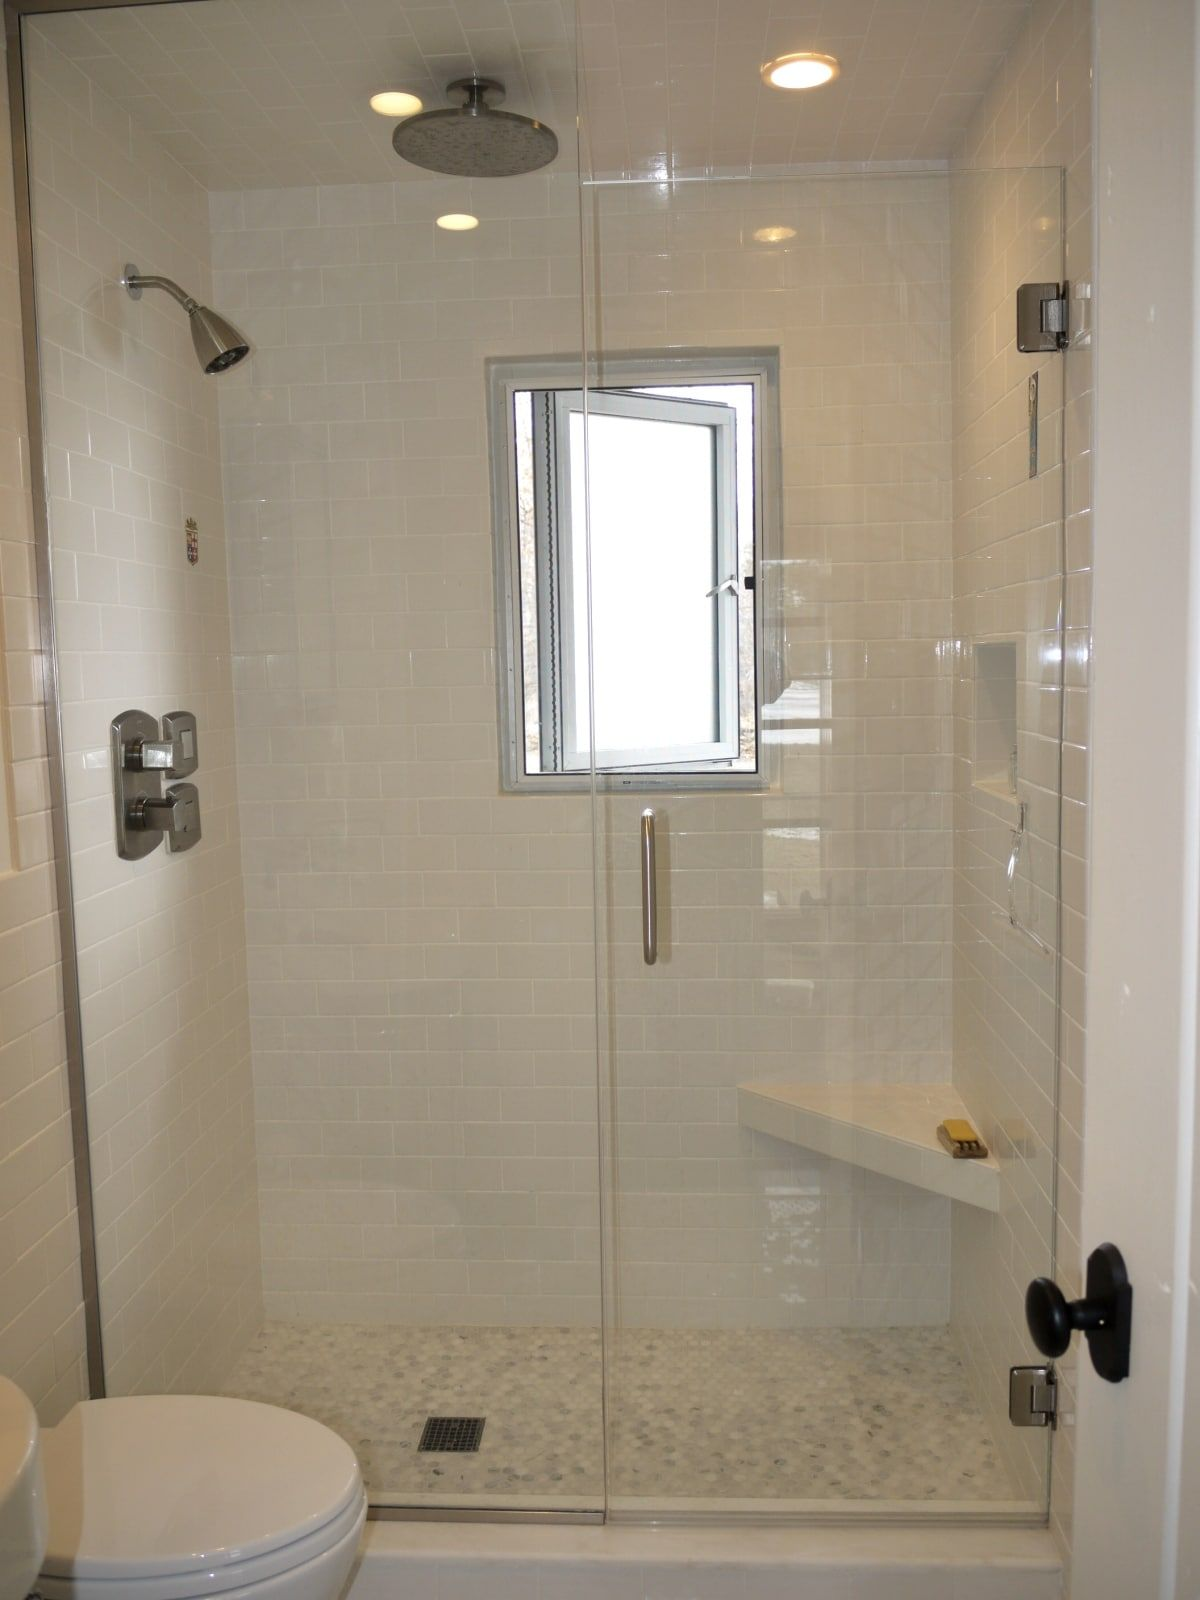 Finished Walking In Shower With Heavy Gl Door And White Subway Tiles How To Do